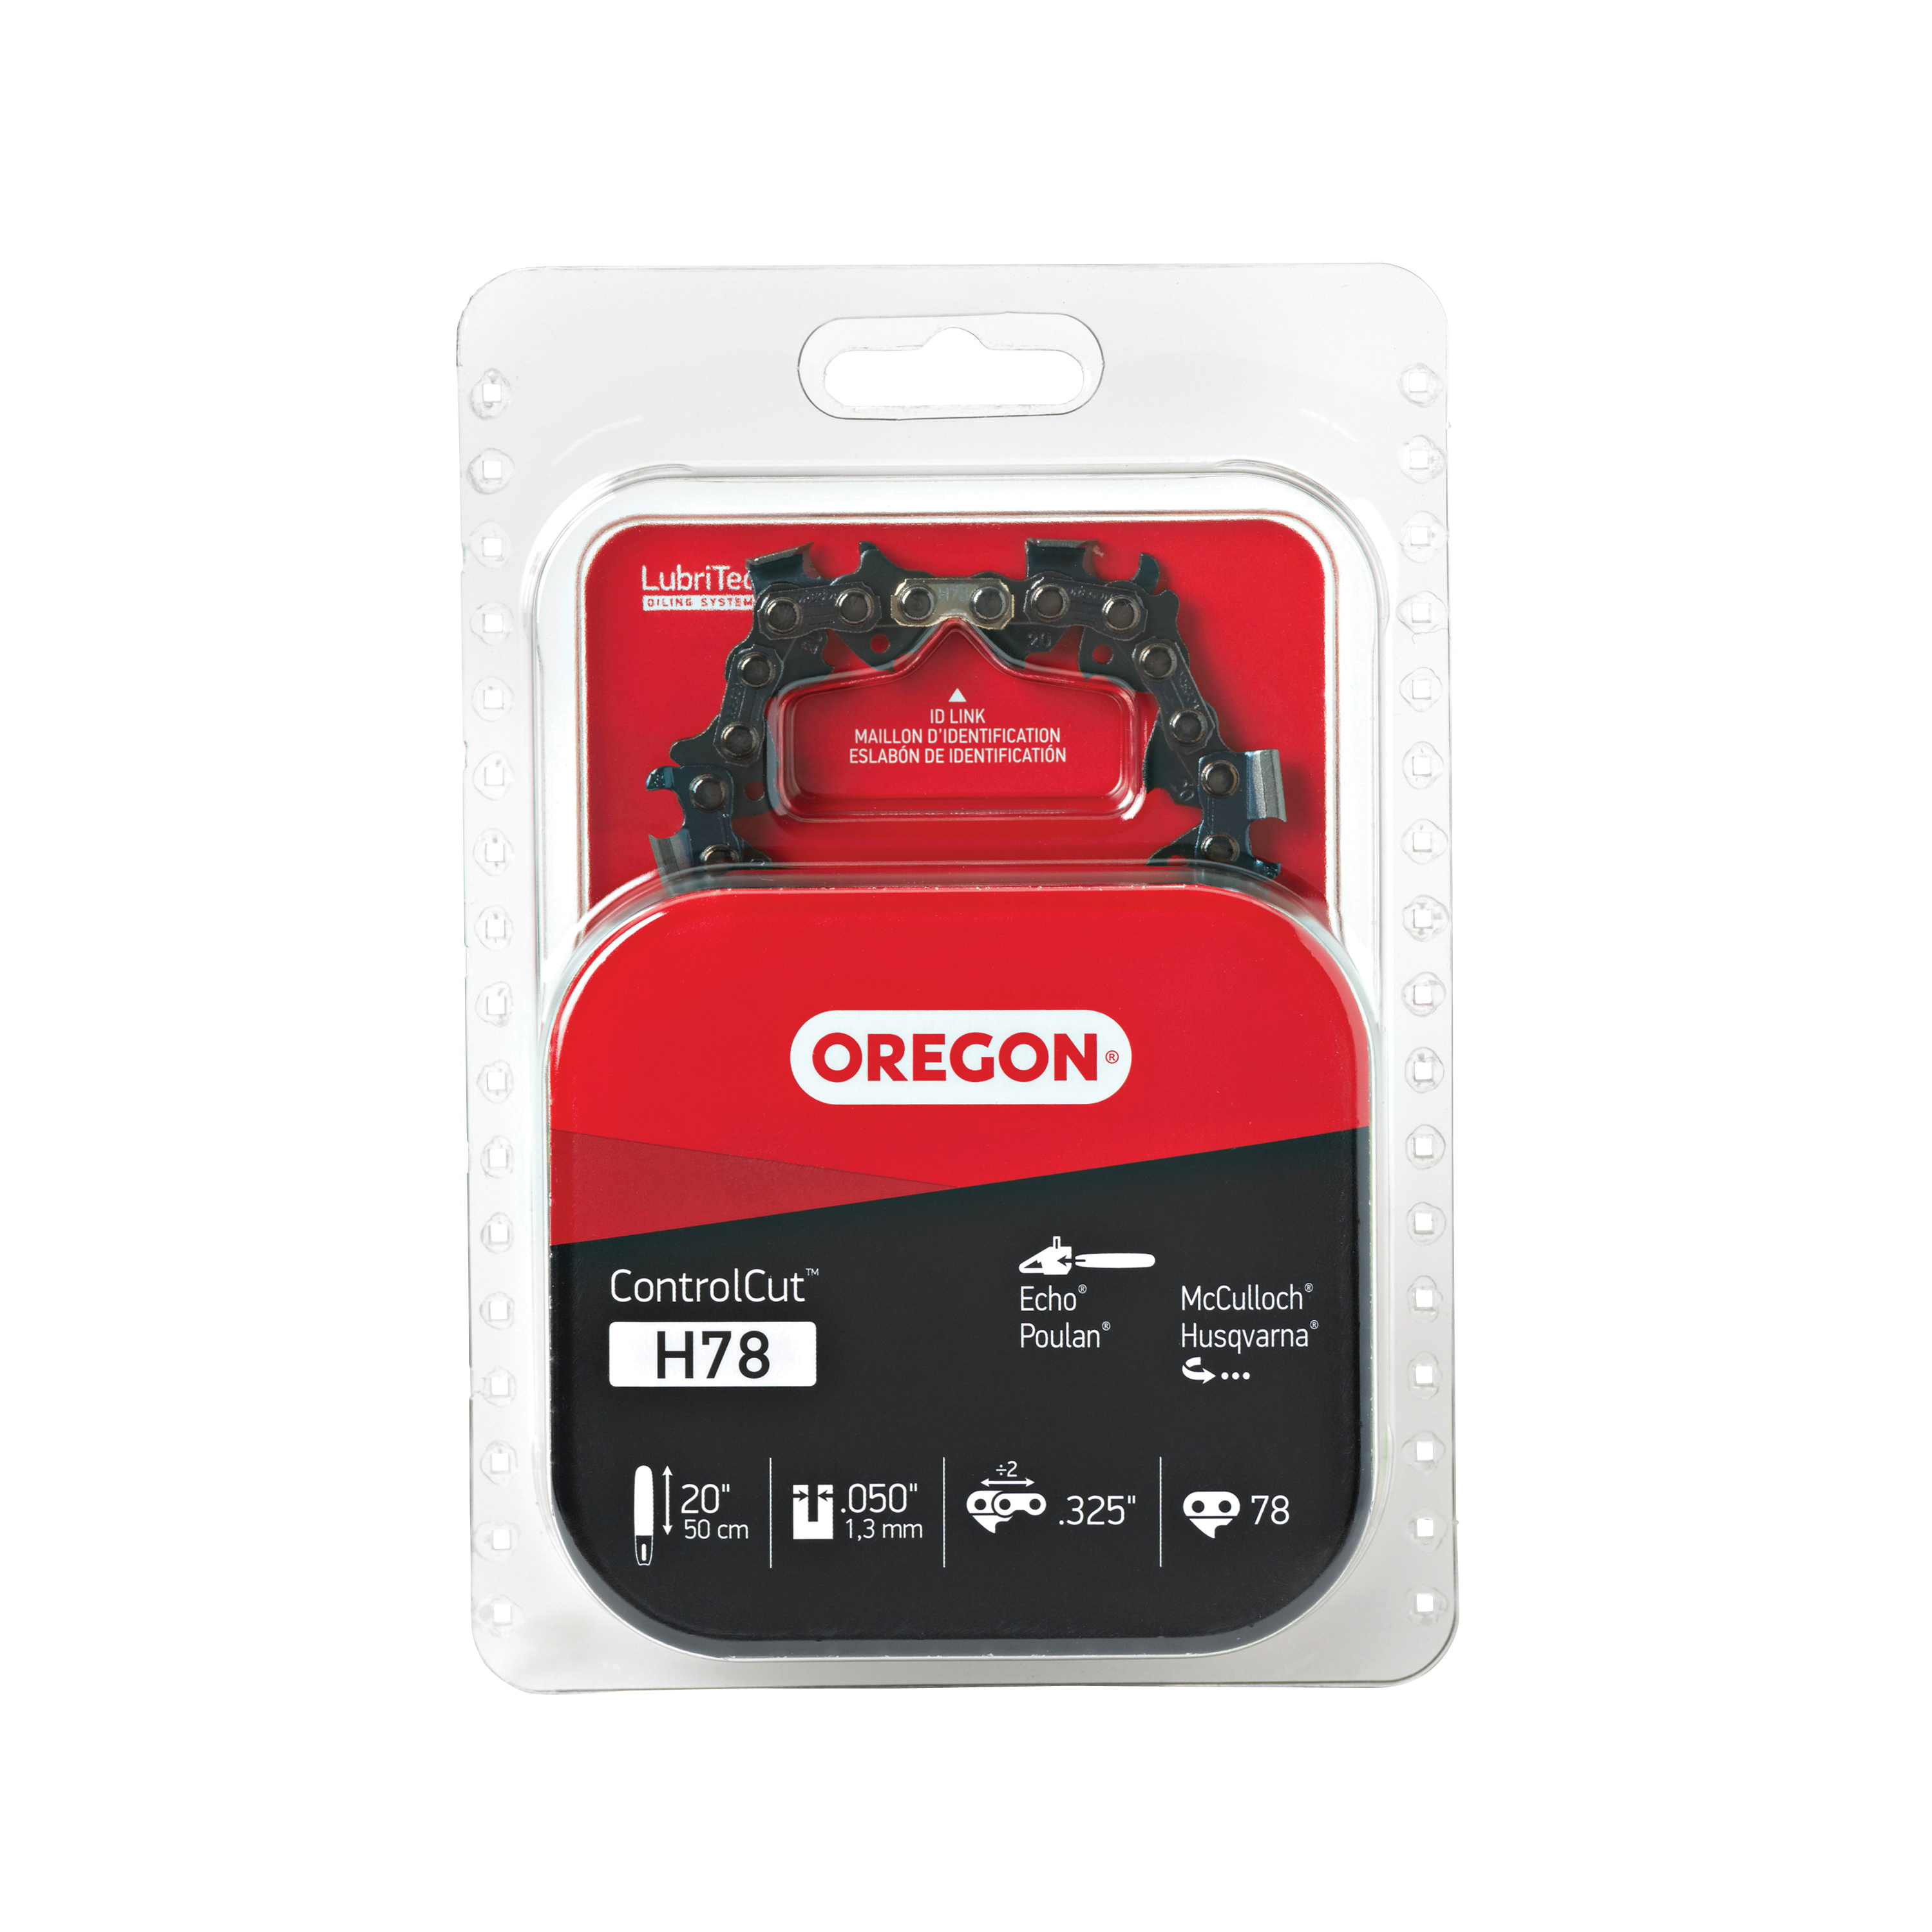 Picture of Oregon H78 Chainsaw Chain, 20 in L Bar, 0.05 Gauge, 0.325 in TPI/Pitch, 78 -Link